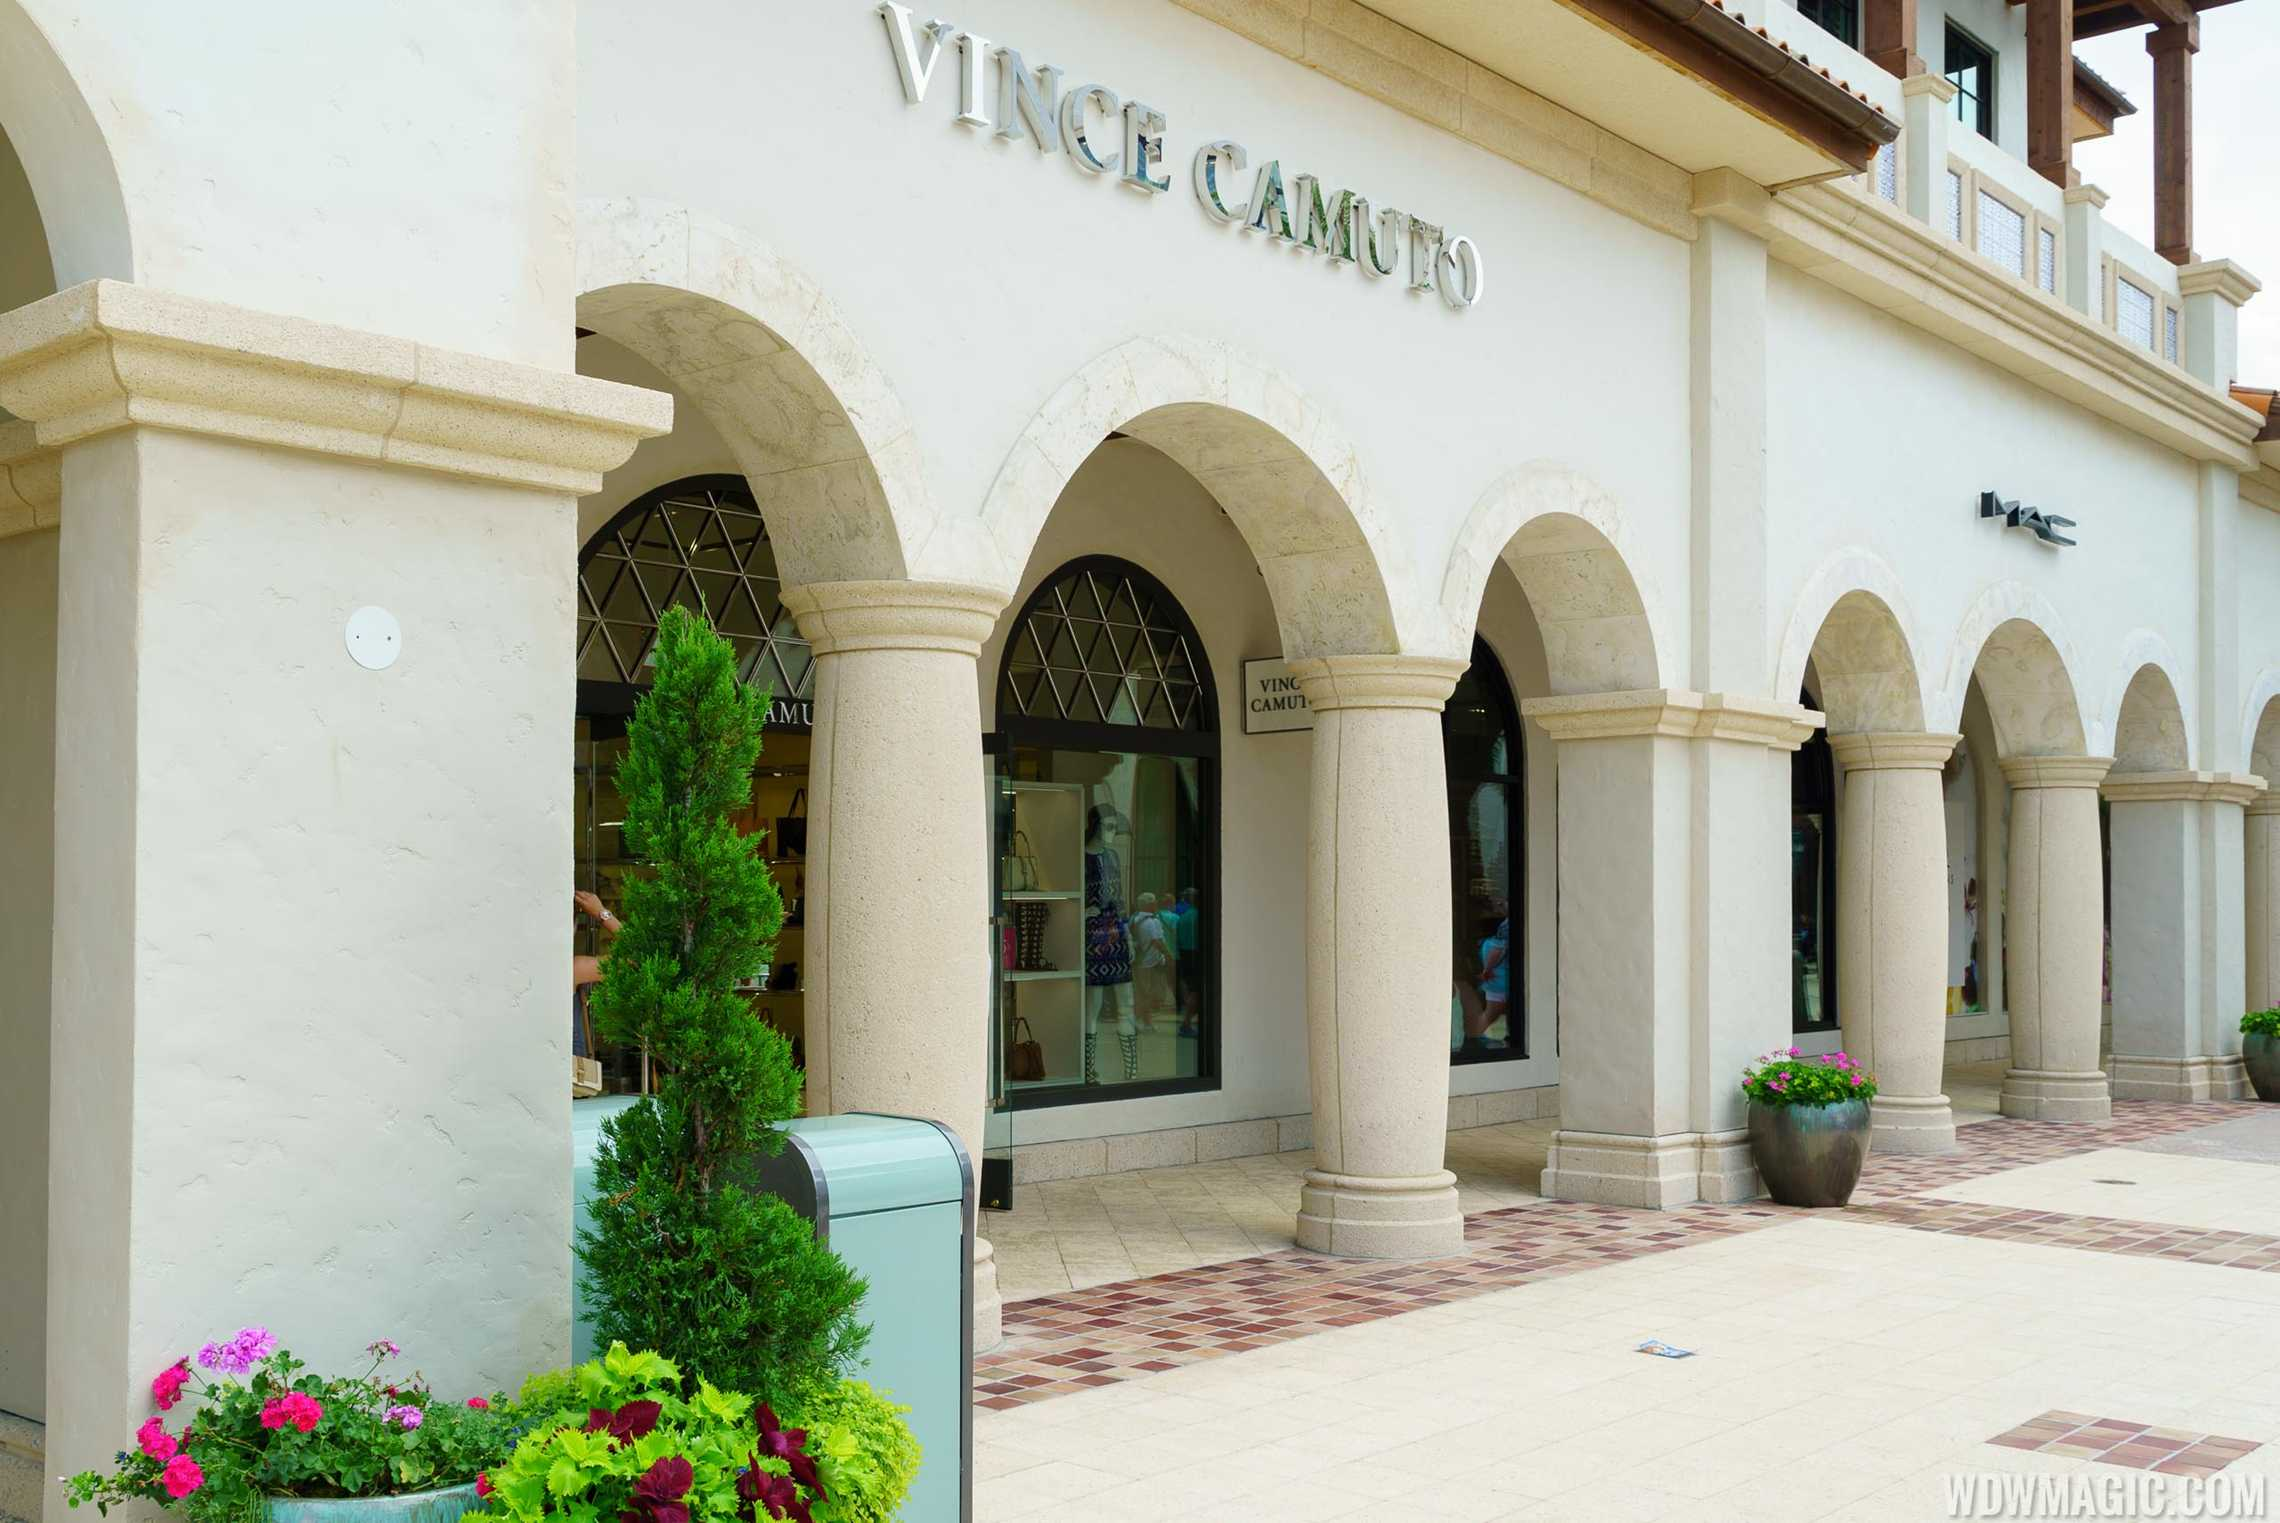 Vince Camuto at Disney Springs Town Center